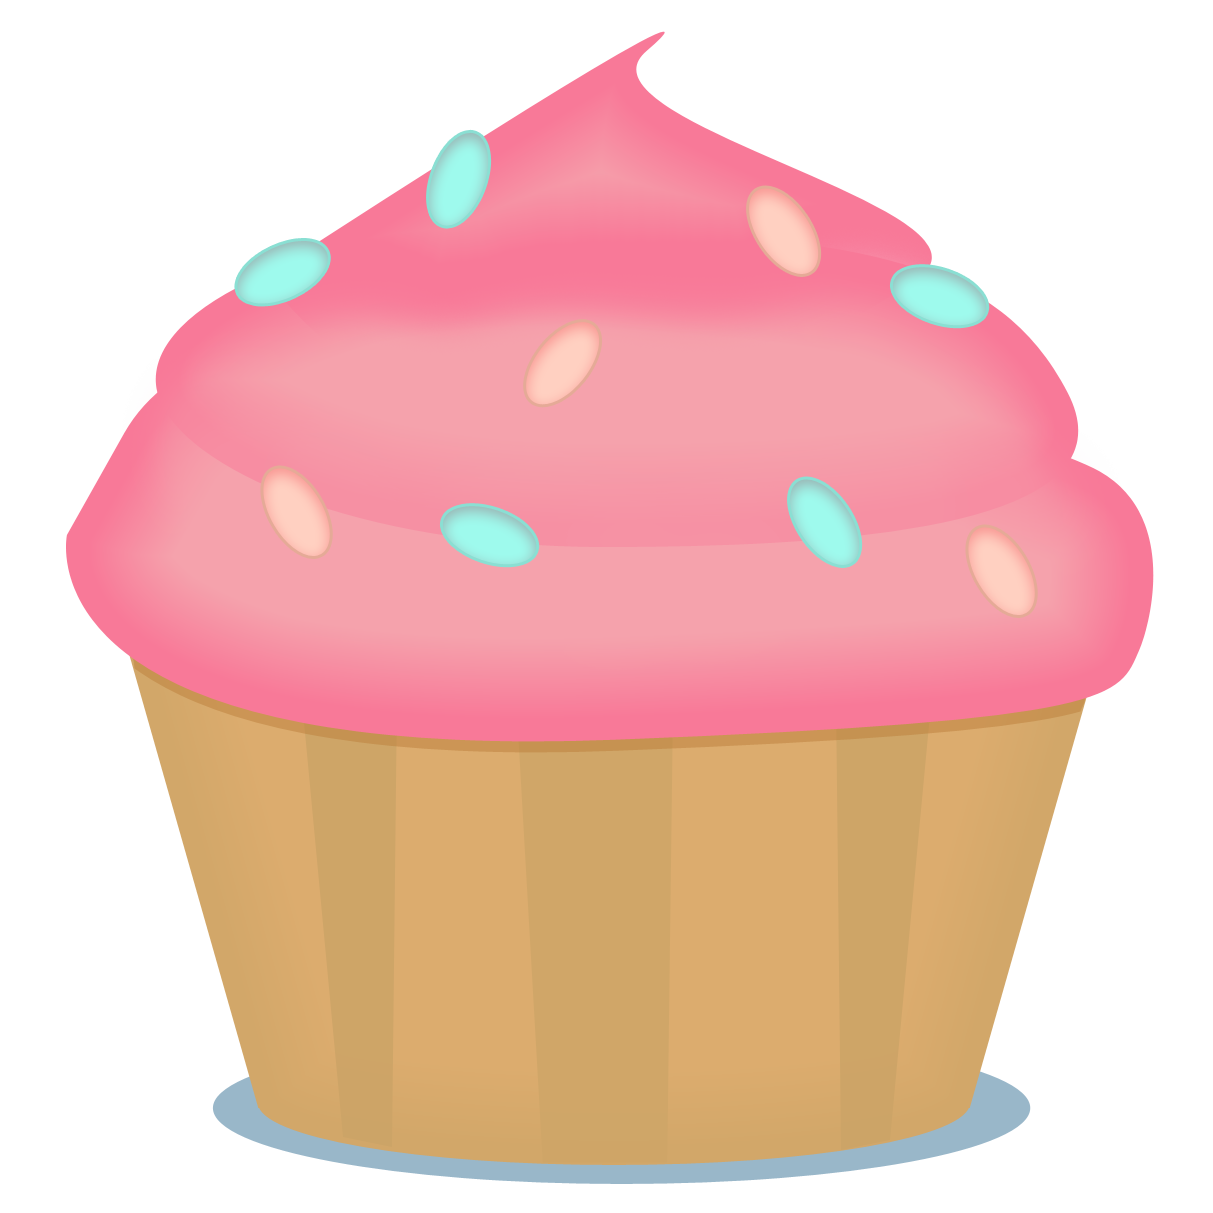 holiday clipart baked goods